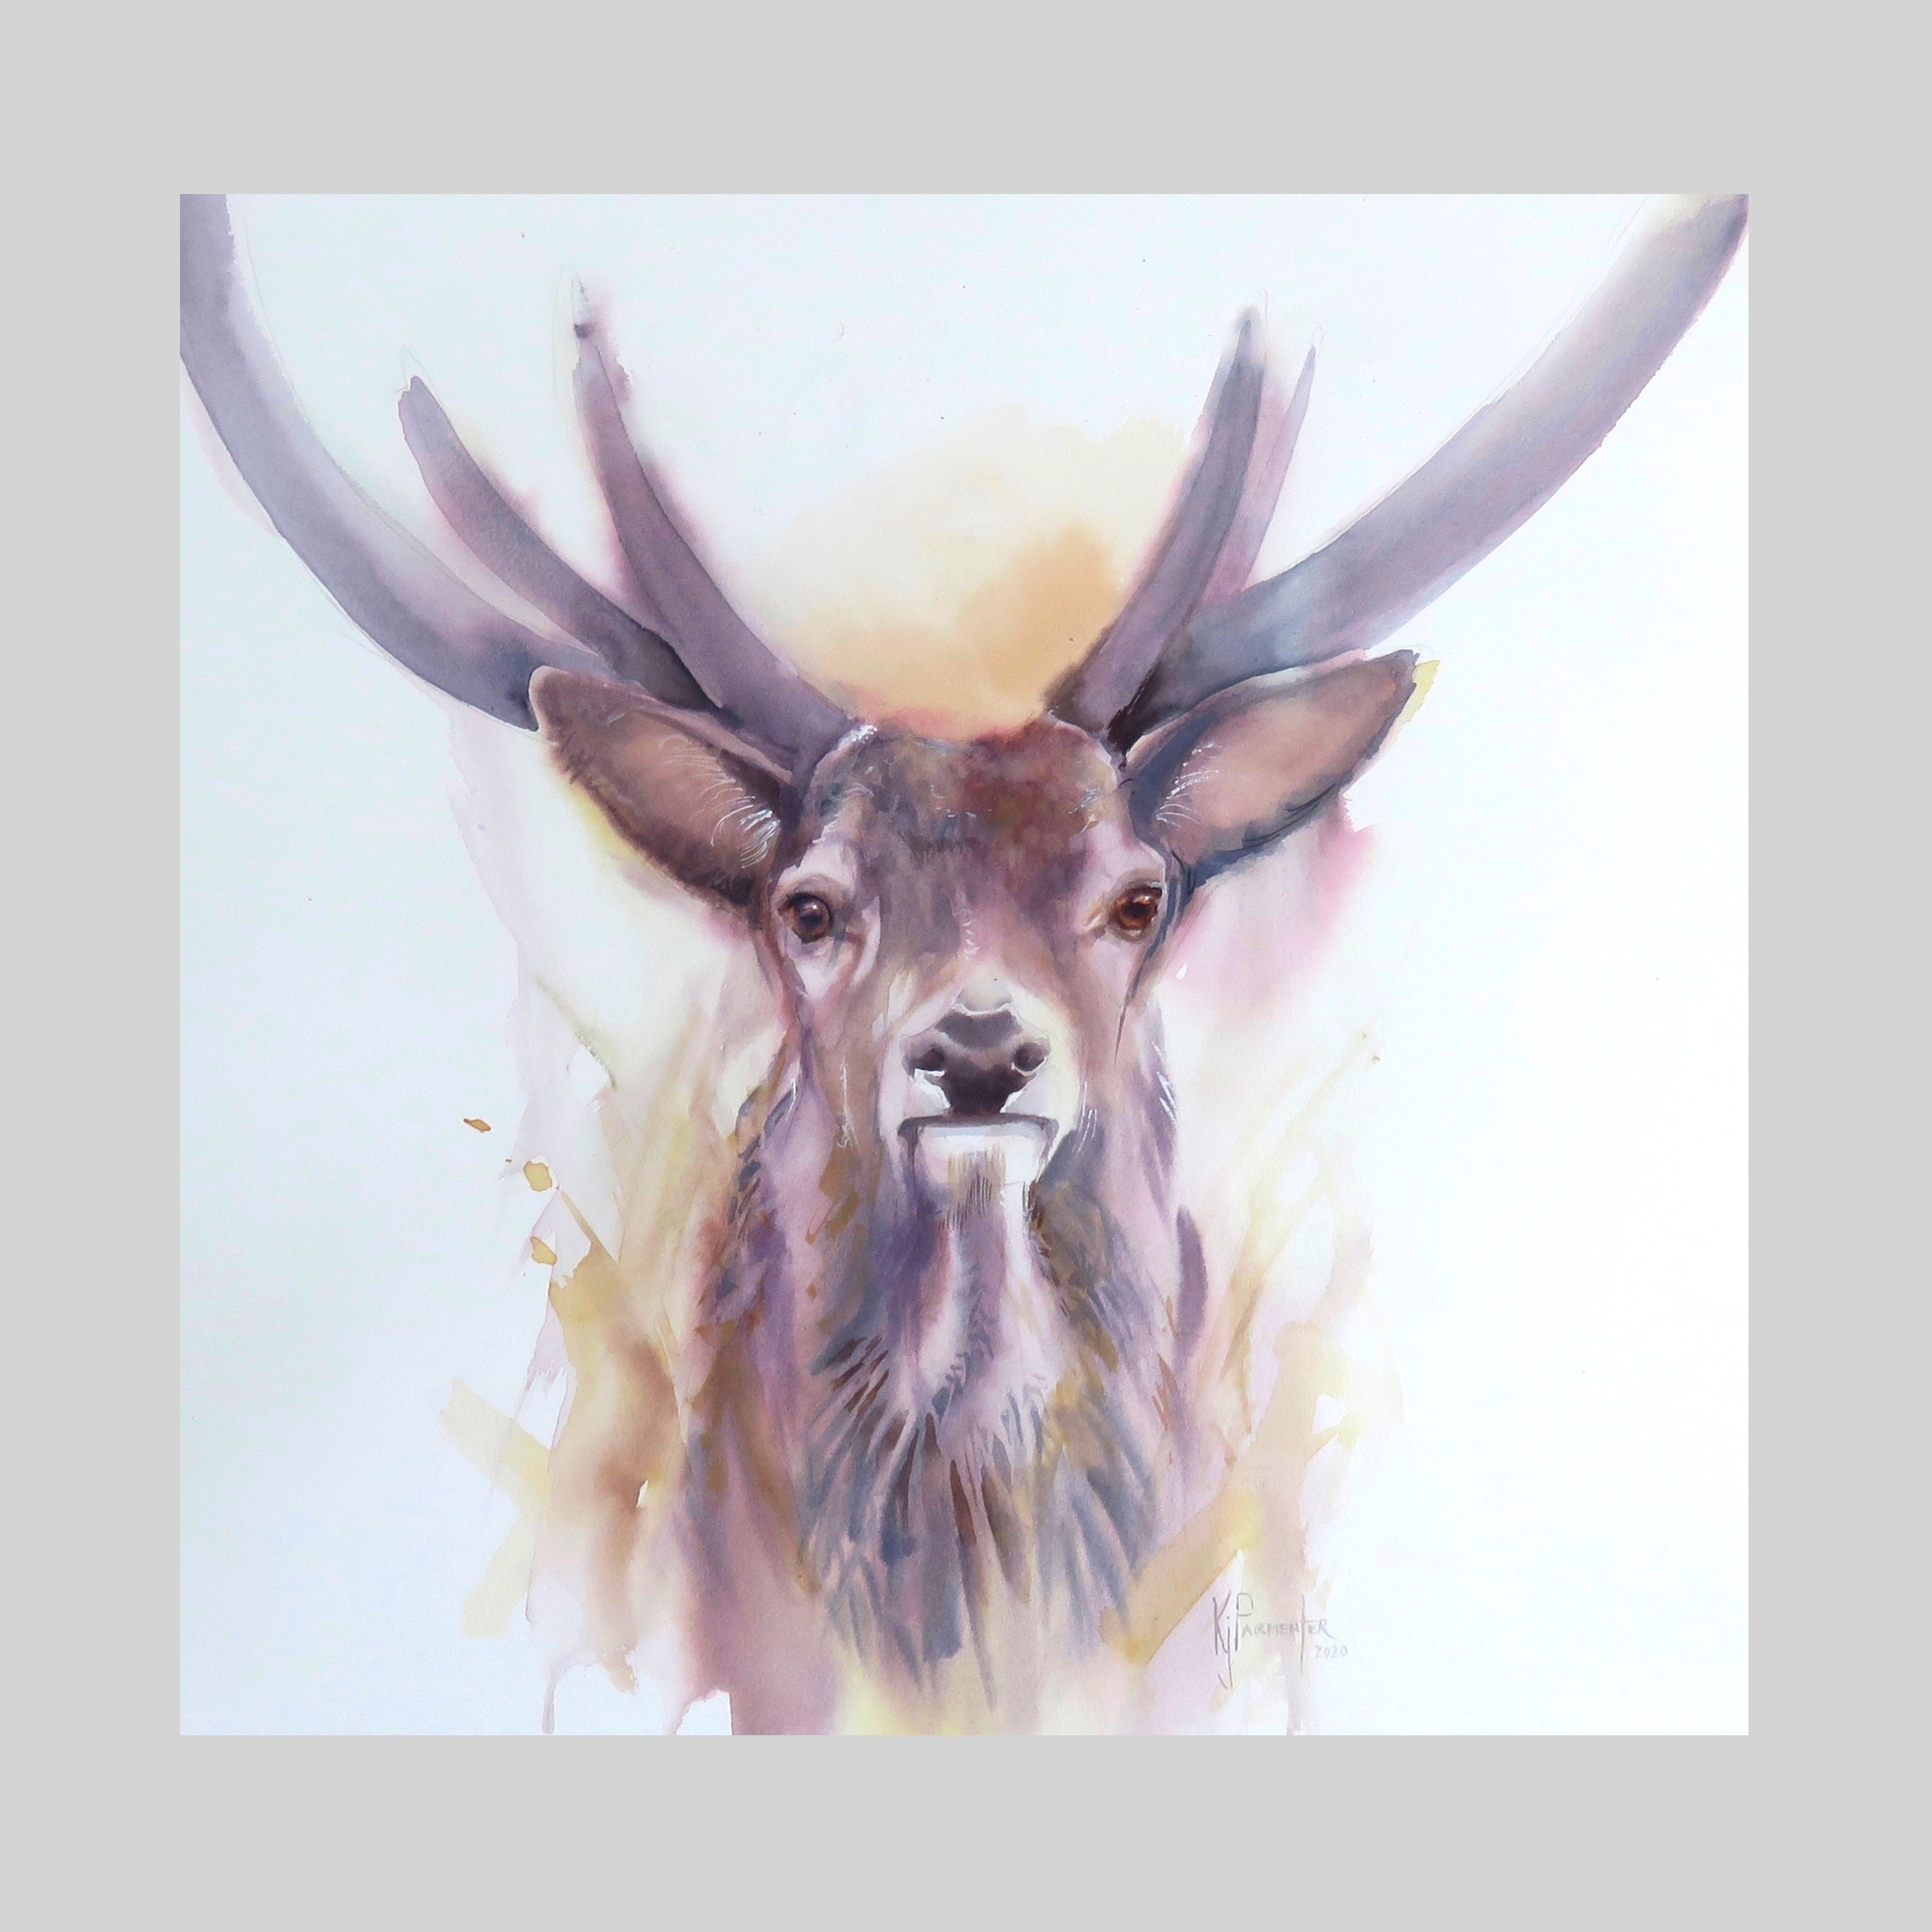 Stag Majestic (at exhibition)